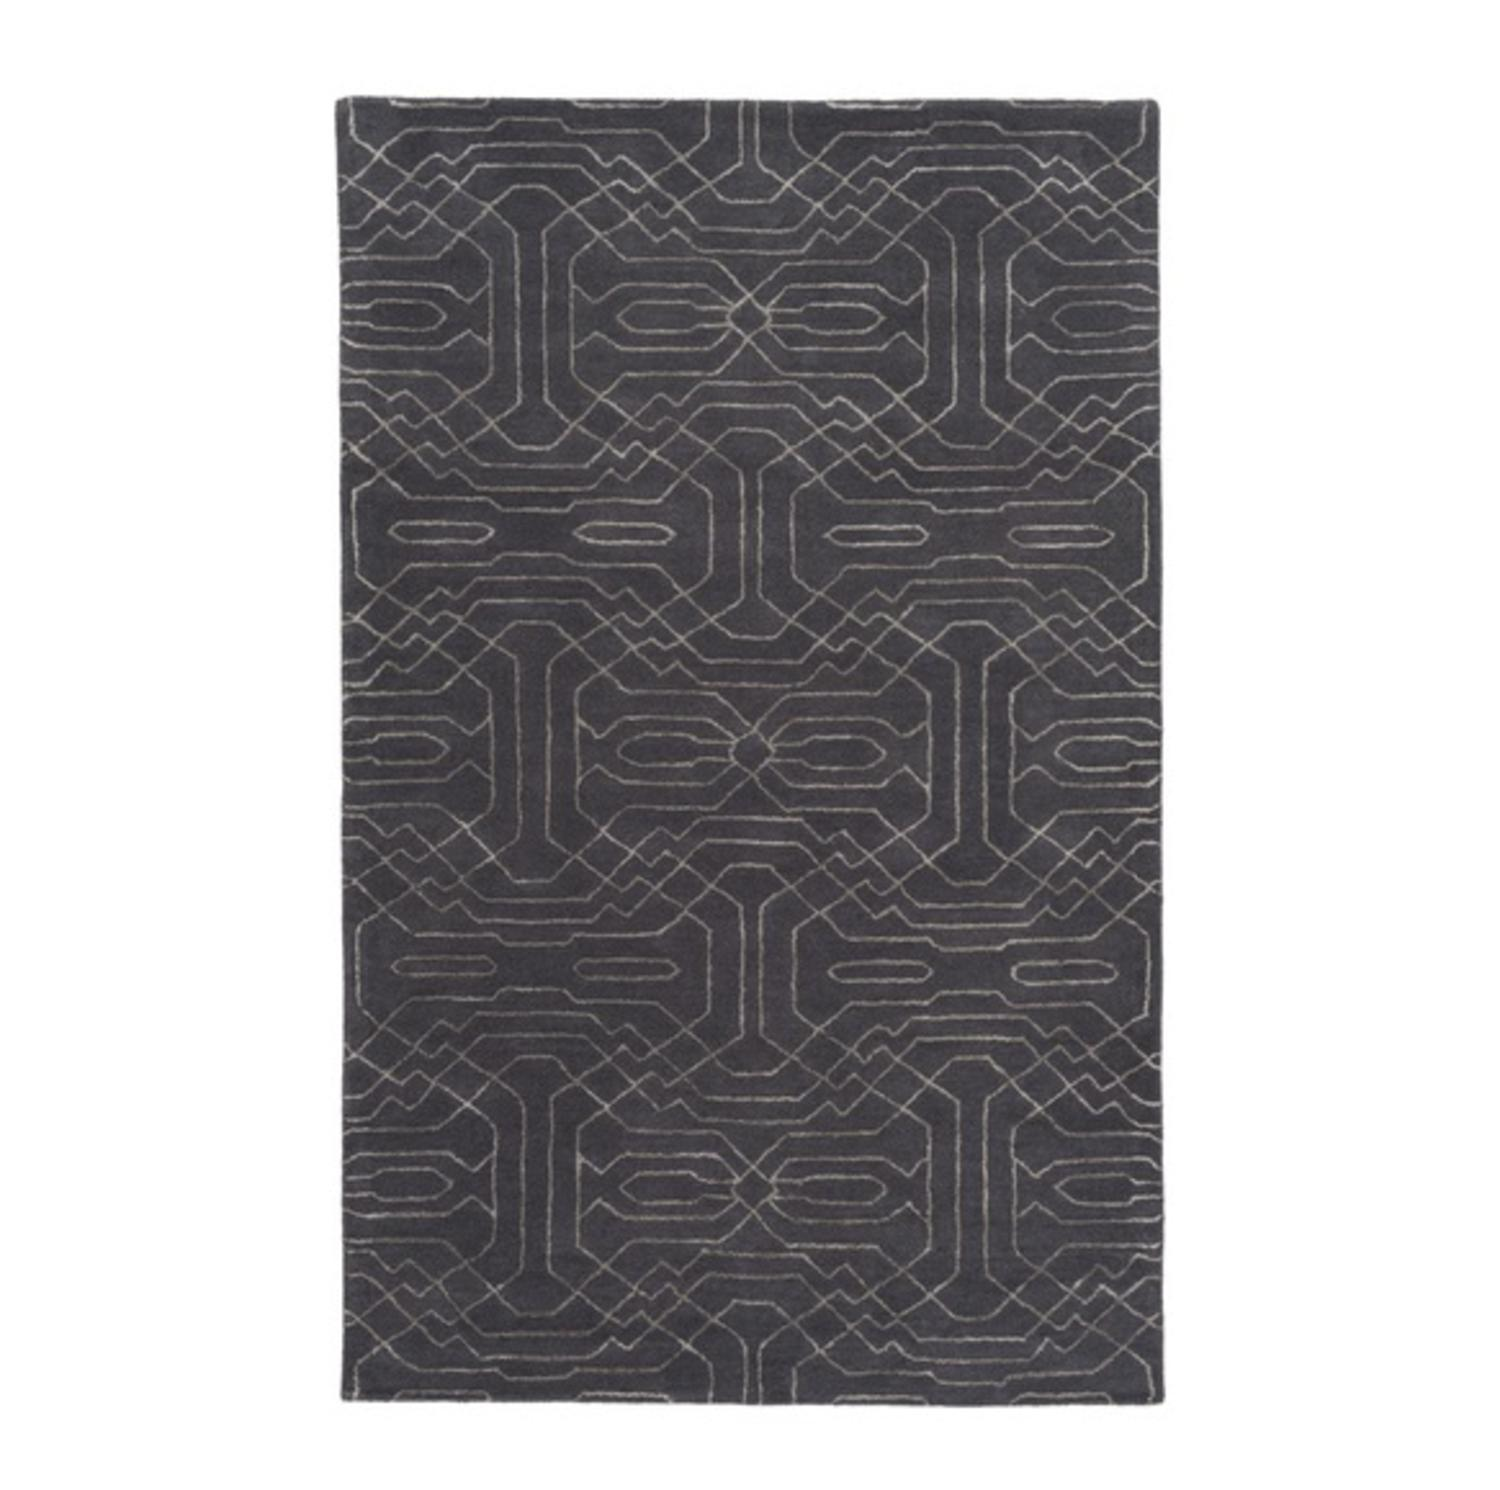 4' x 6' Technology Chic Midnight Black and Misty Blue Han...